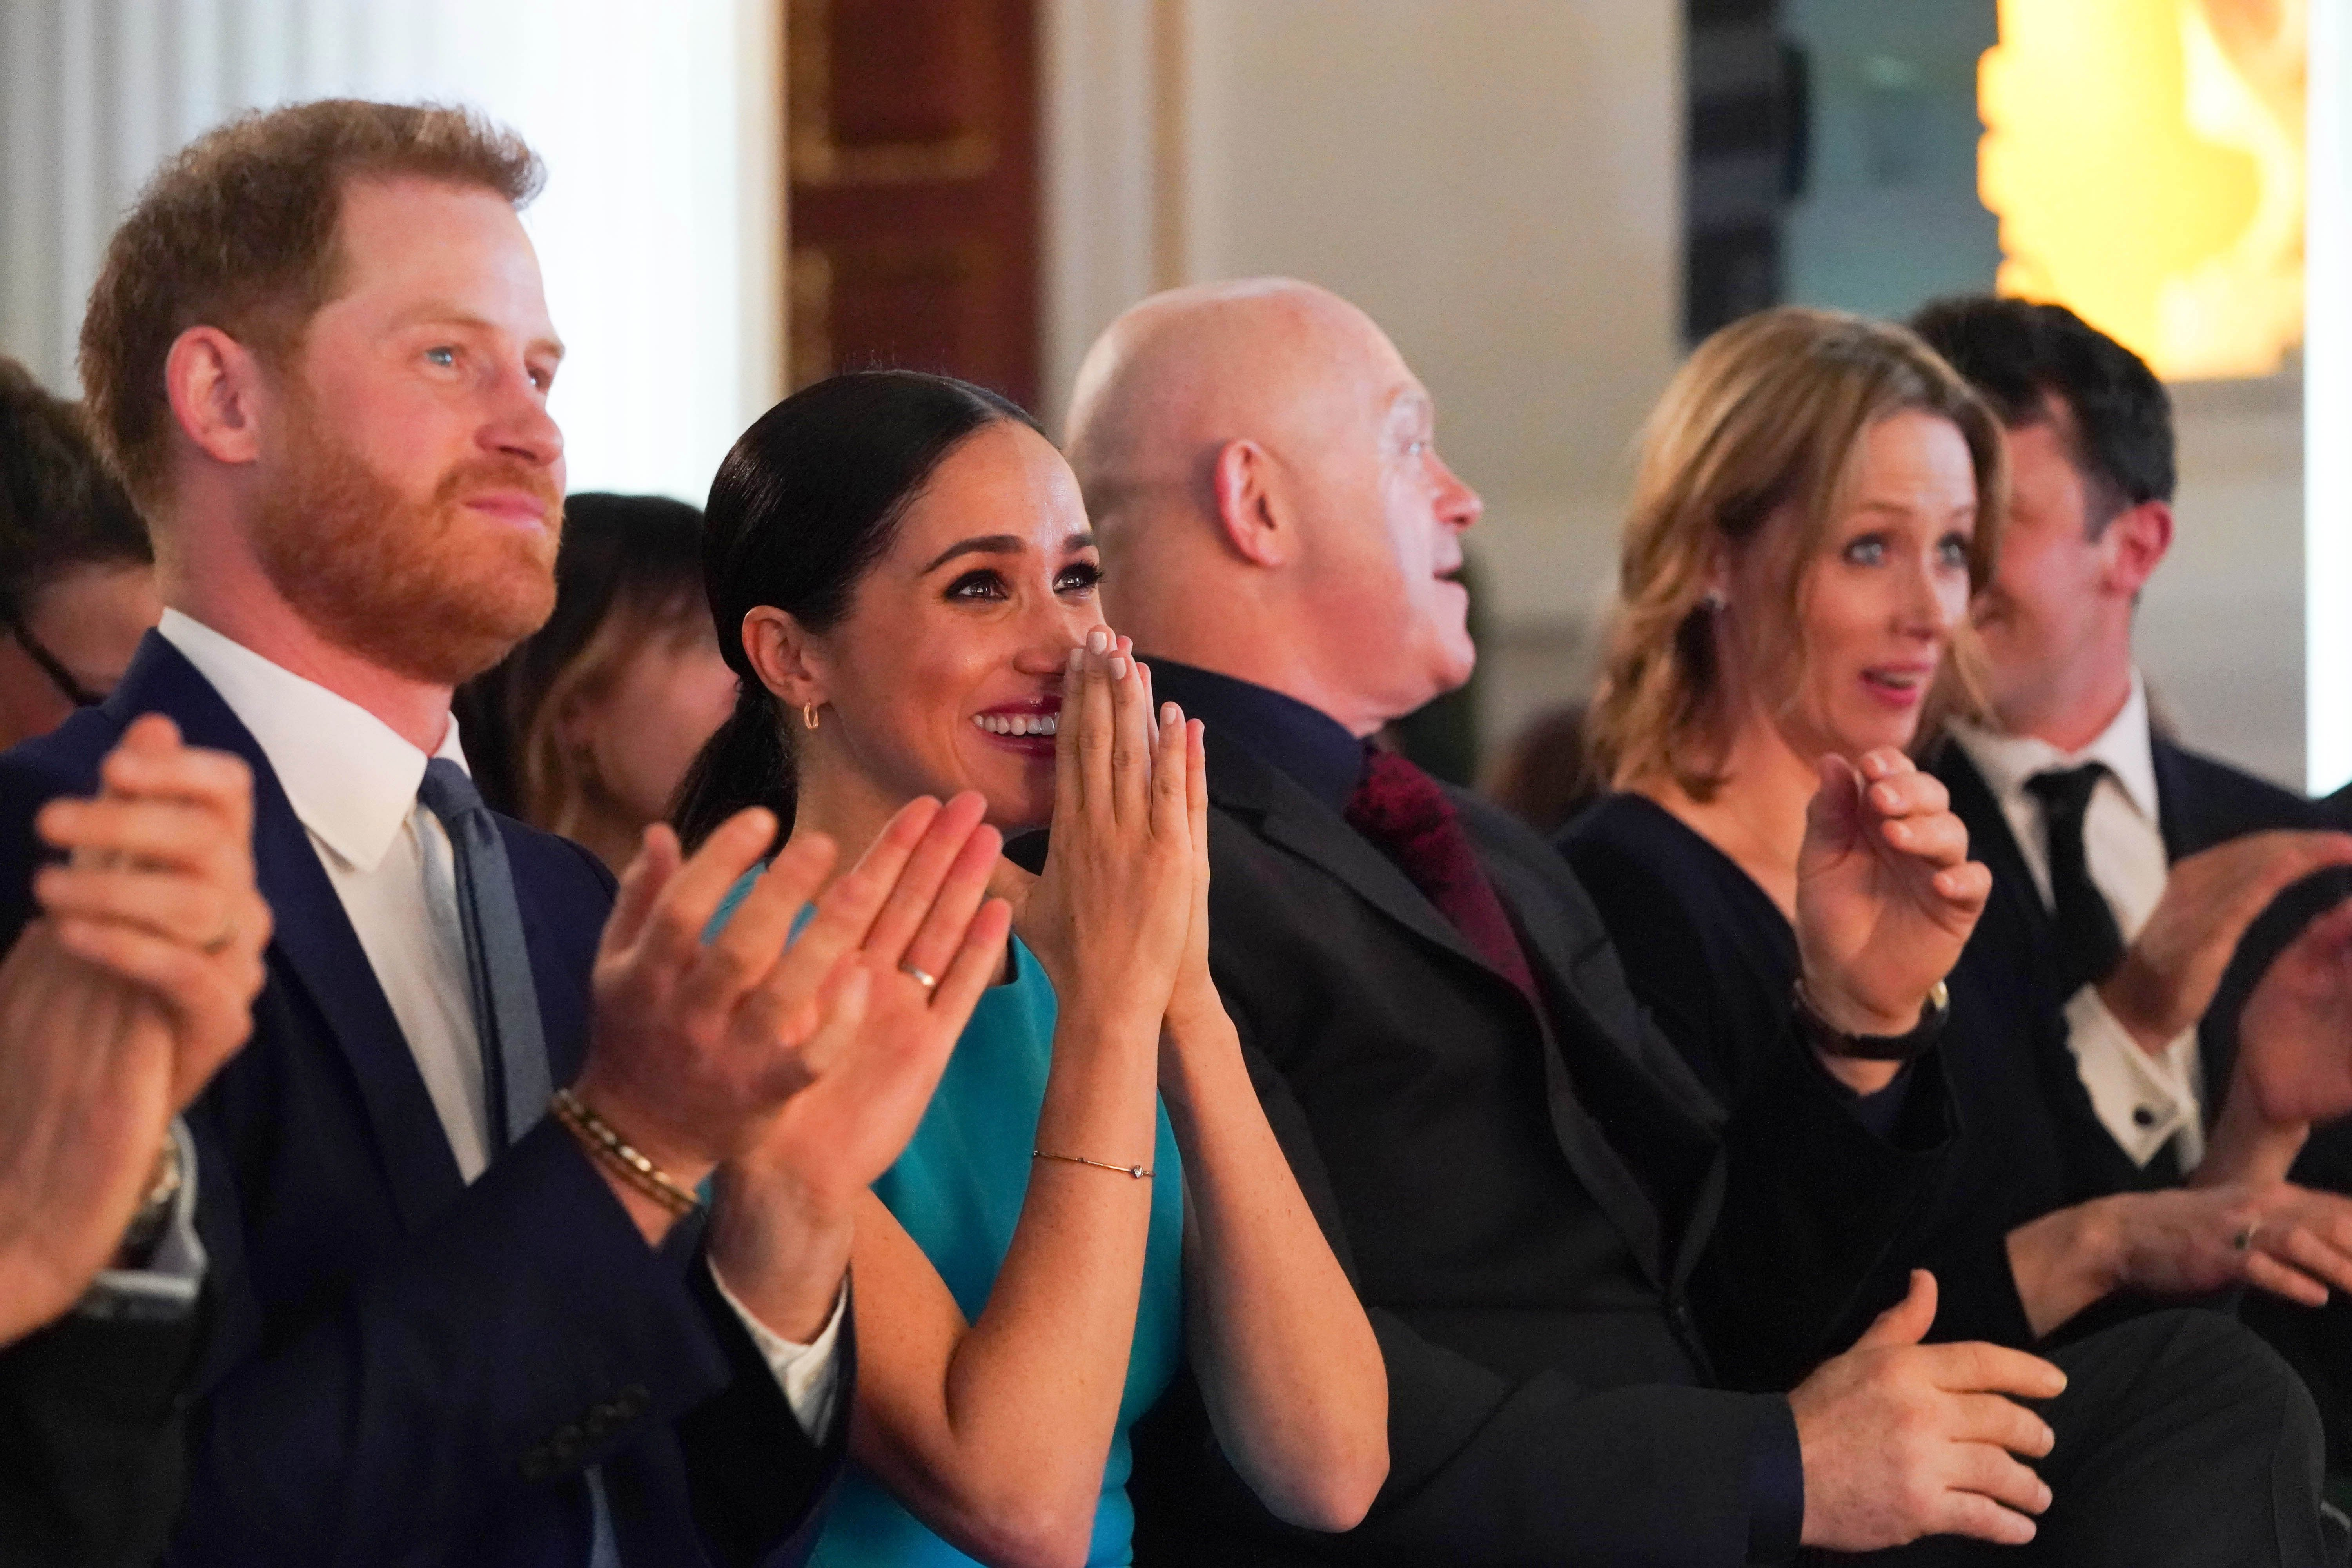 Prince Harry and Meghan Markle attend the annual Endeavour Fund Awards at Mansion House on March 5, 2020 in London, England   Photo: Getty Images